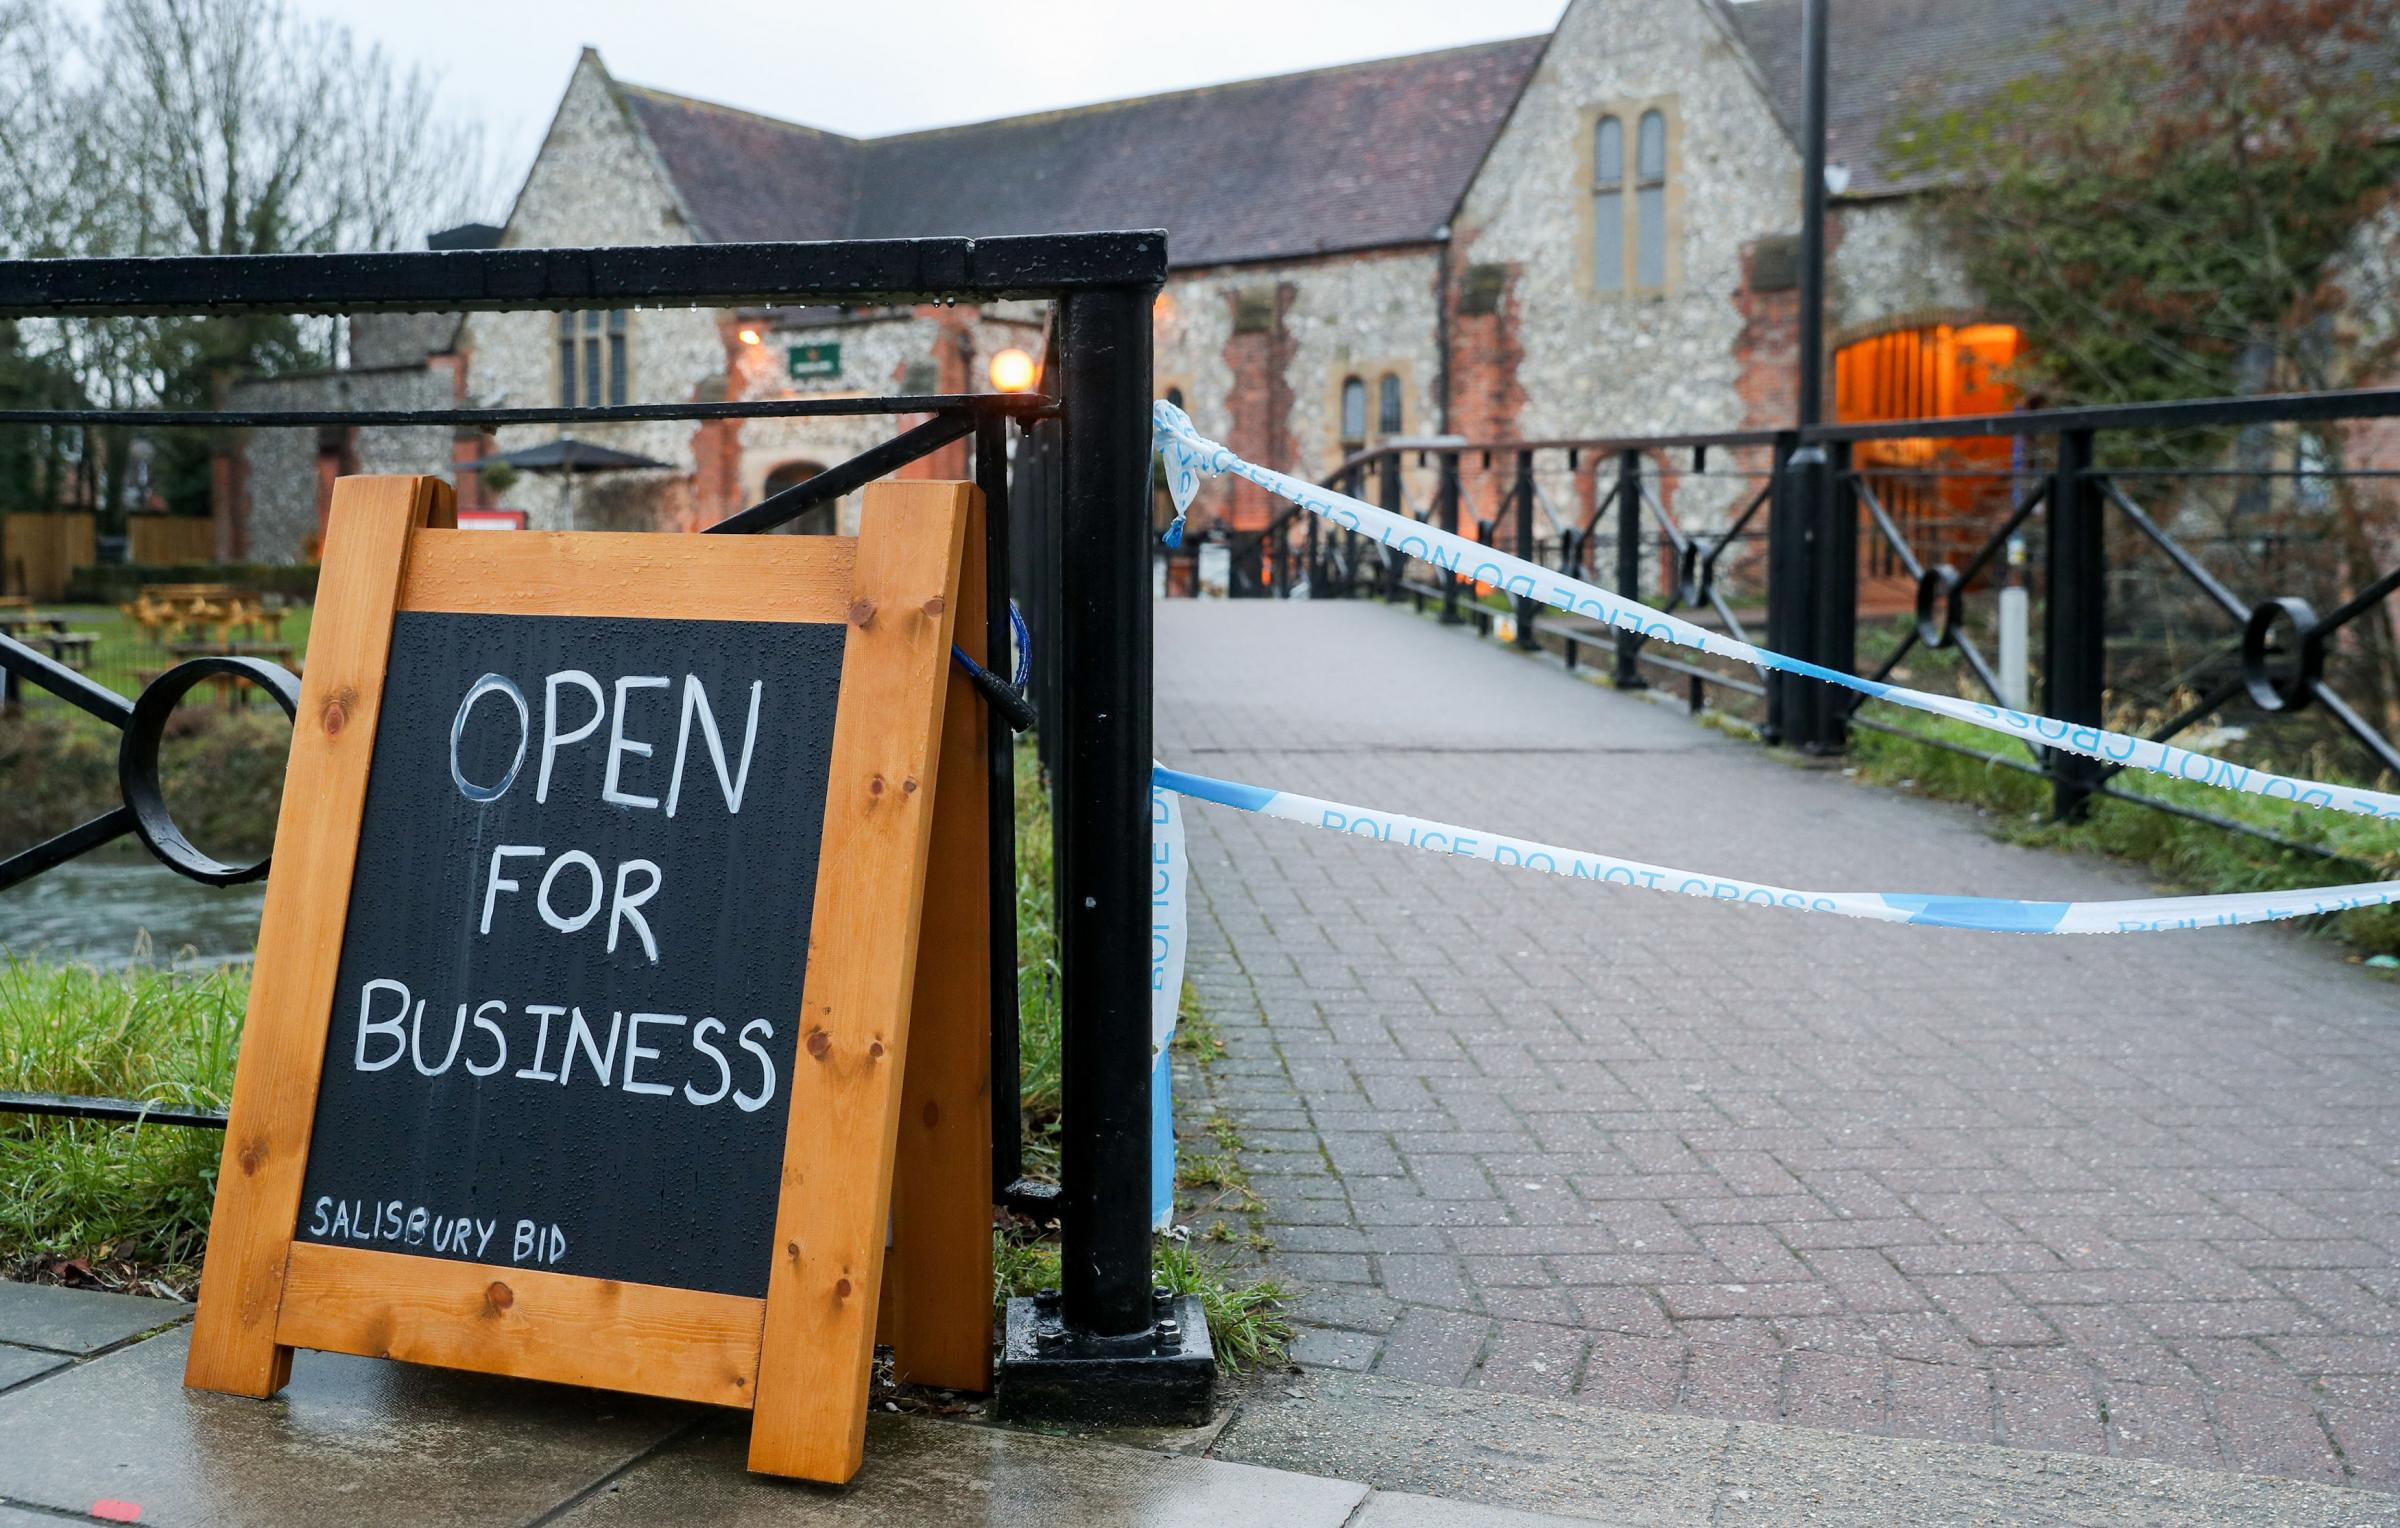 Police tape cordons off The Mill pub near to the Maltings in Salisbury, as police and members of the armed forces probe the suspected nerve agent attack on Russian double agent Sergei Skripal. PRESS ASSOCIATION Photo. Picture date: Monday March 12, 2018.